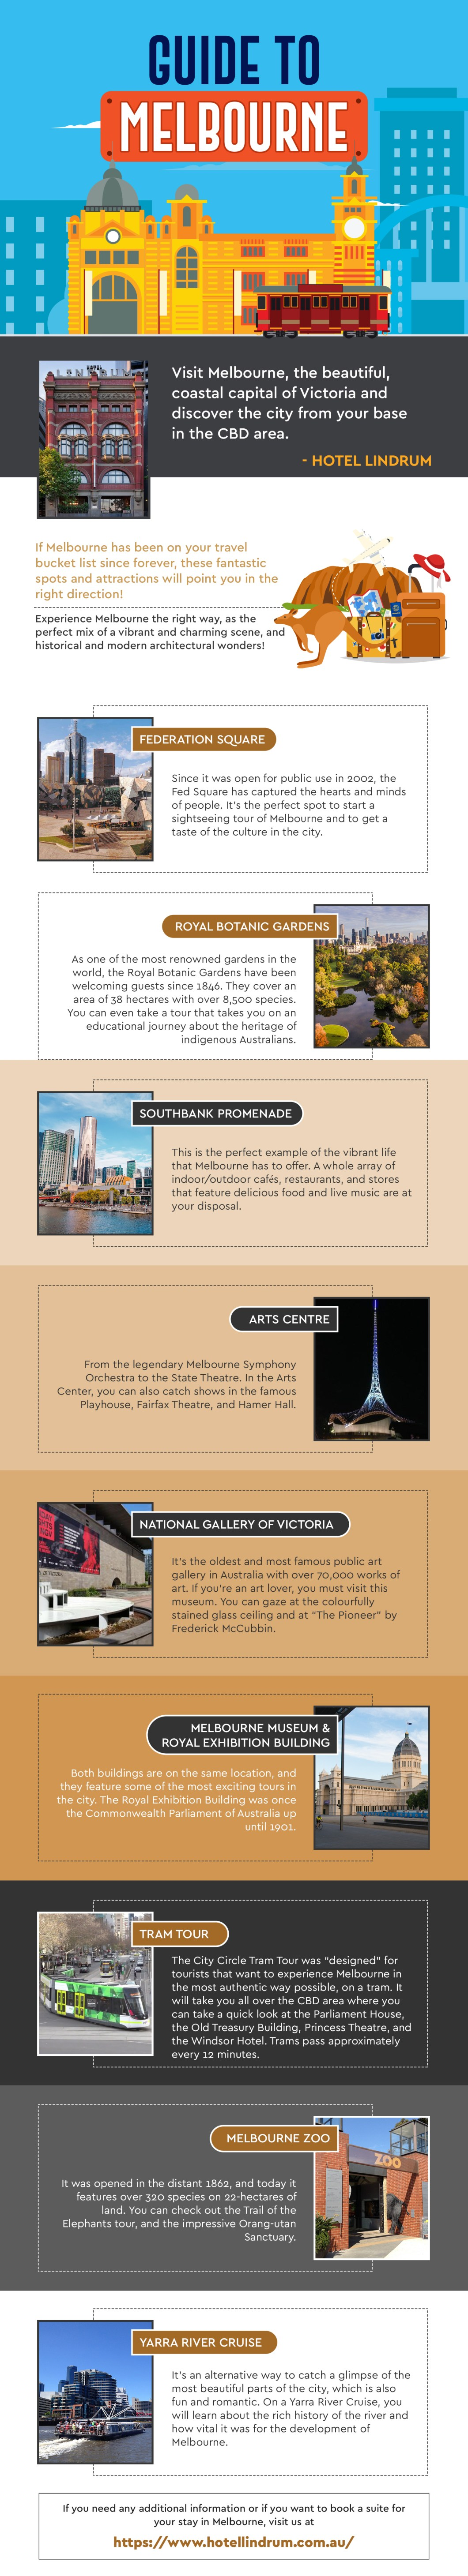 Must See's in Melbourne - Infographic